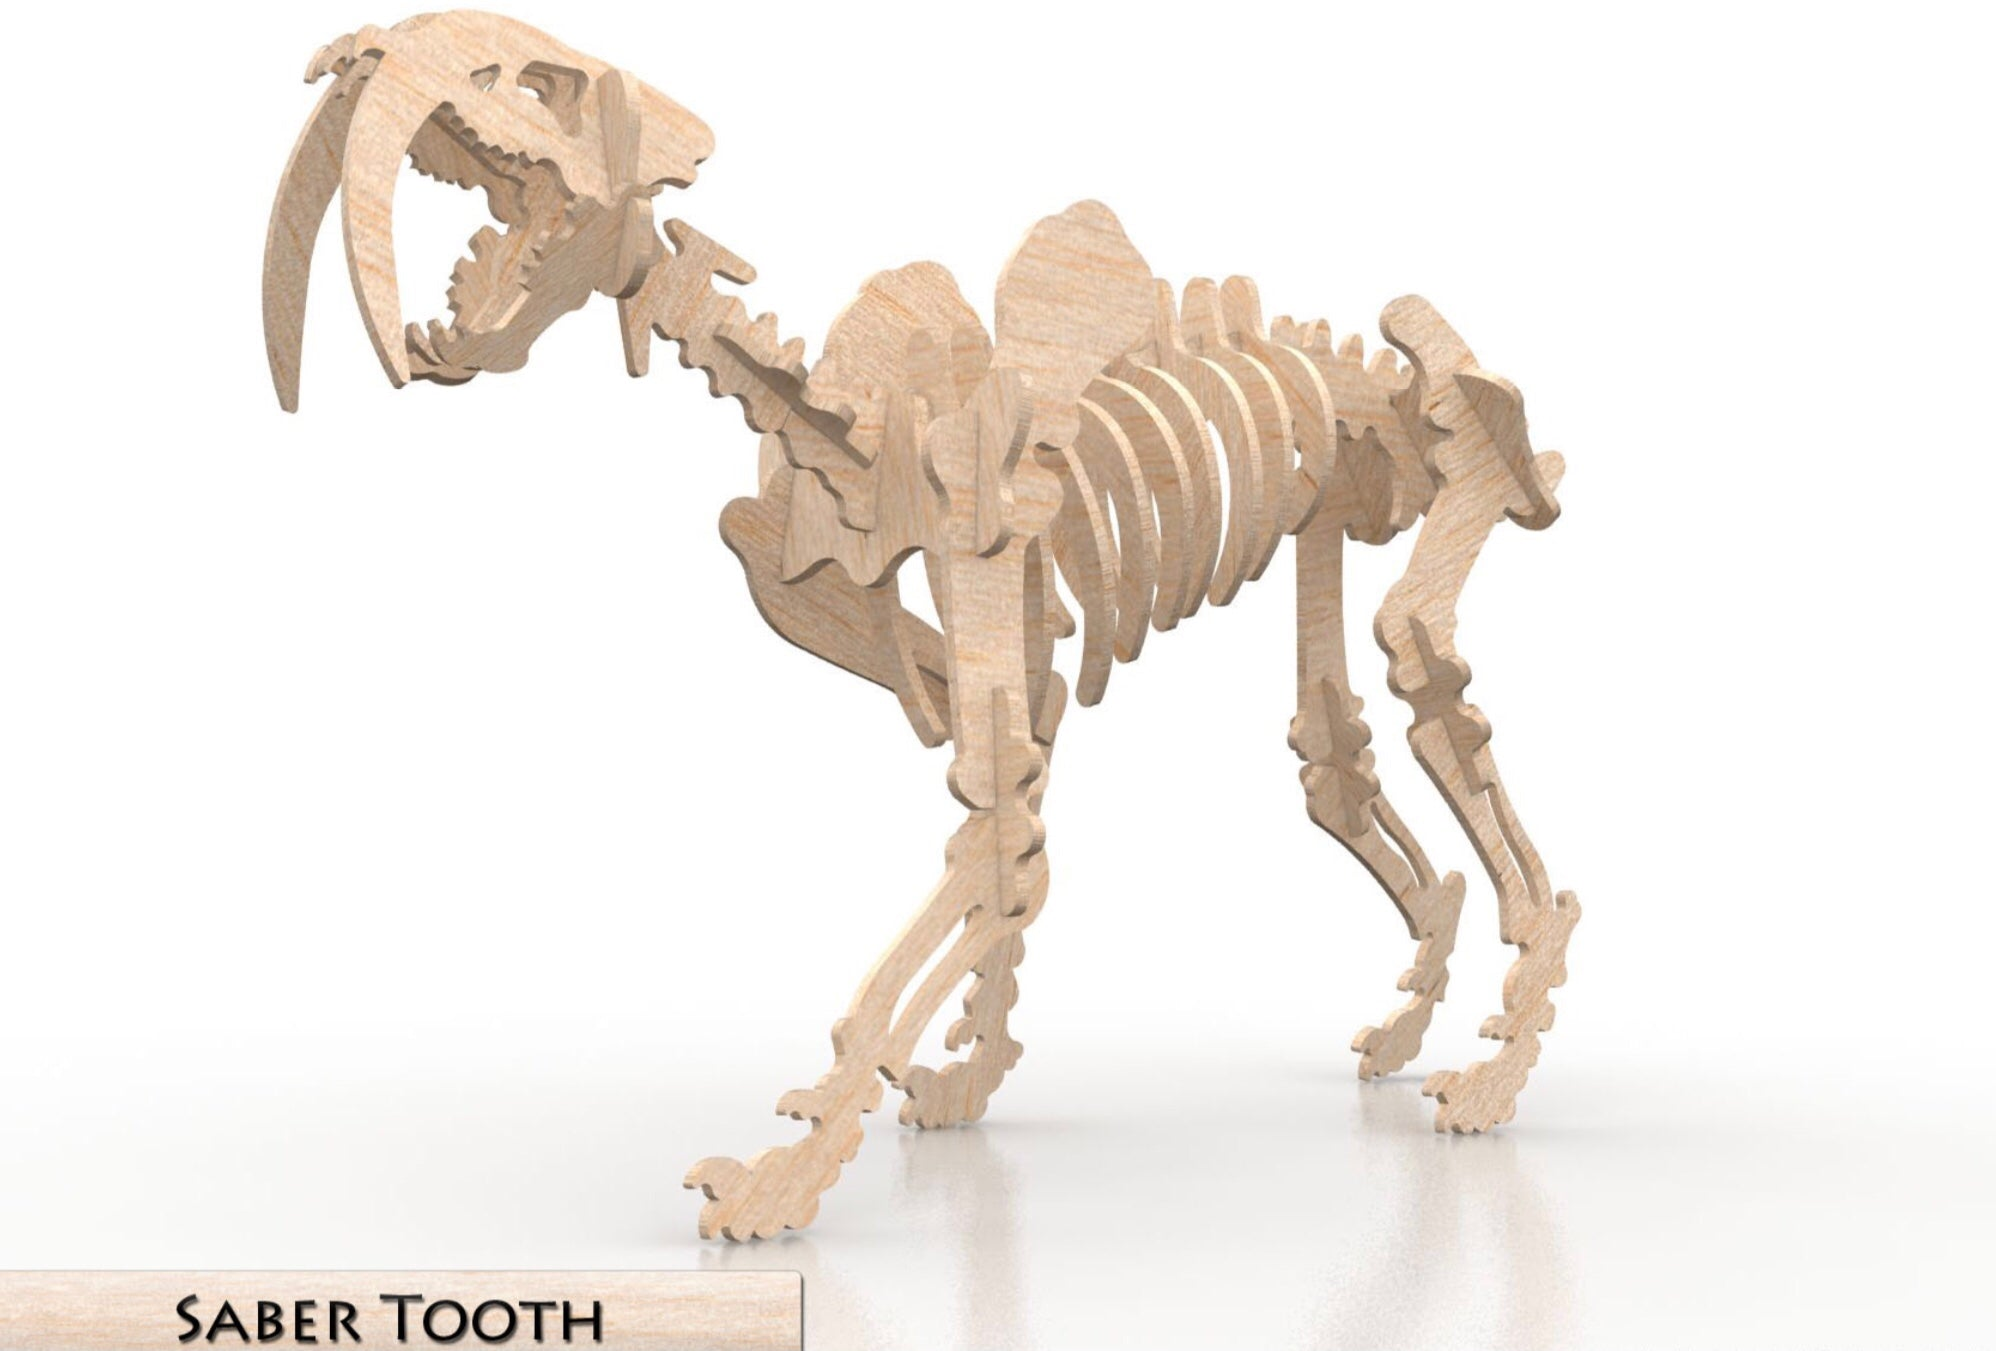 3D Puzzle- Dinosaur Collection: Saber Tooth